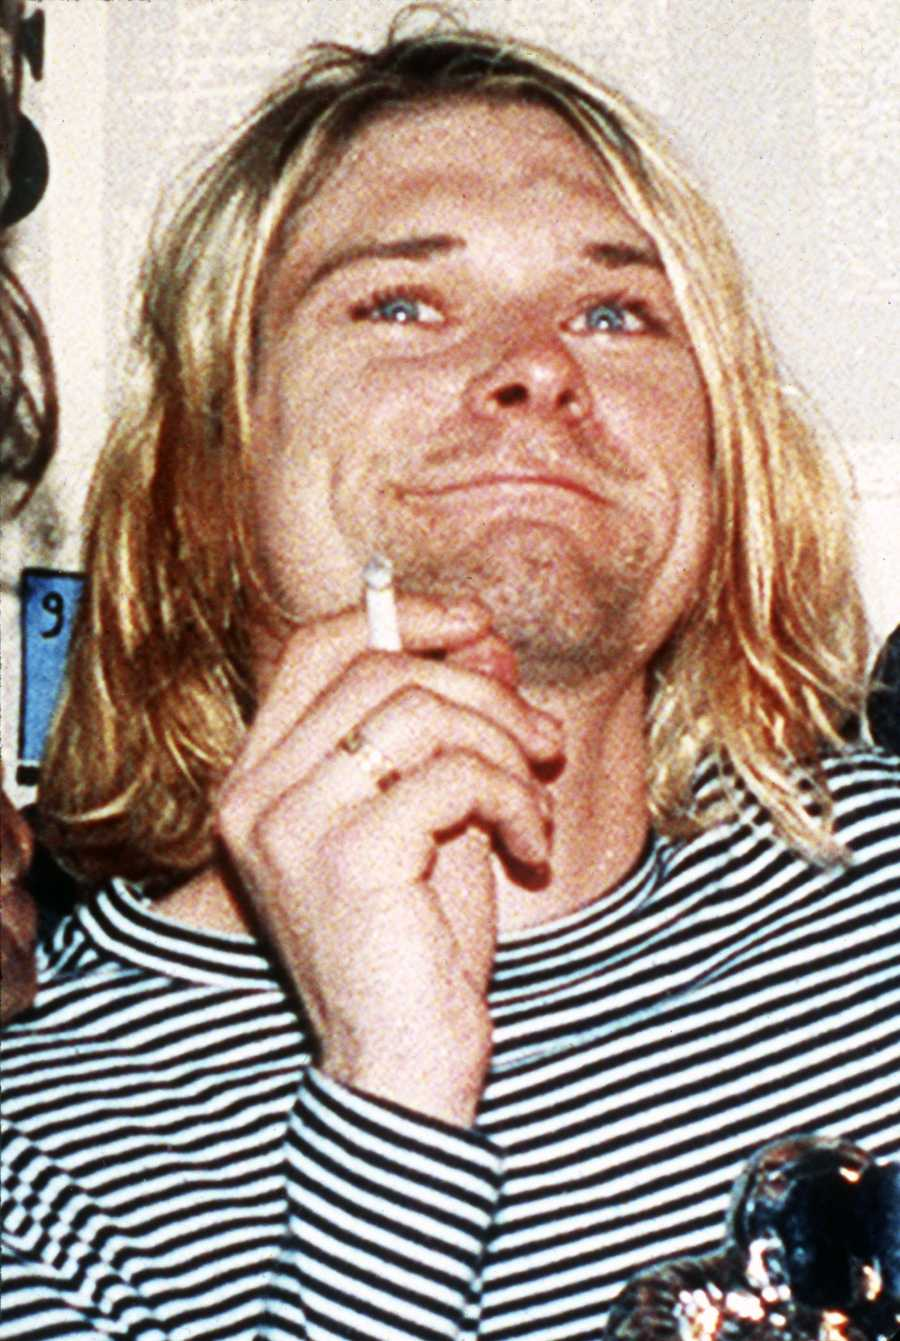 Kurt Cobain was best known as the lead singer and guitarist of the grunge band Nirvana.During the last years of his life, Cobain struggled with heroin addiction and depression. He used a shotgun to kill himself. (February 20, 1967 – April 5, 1994)